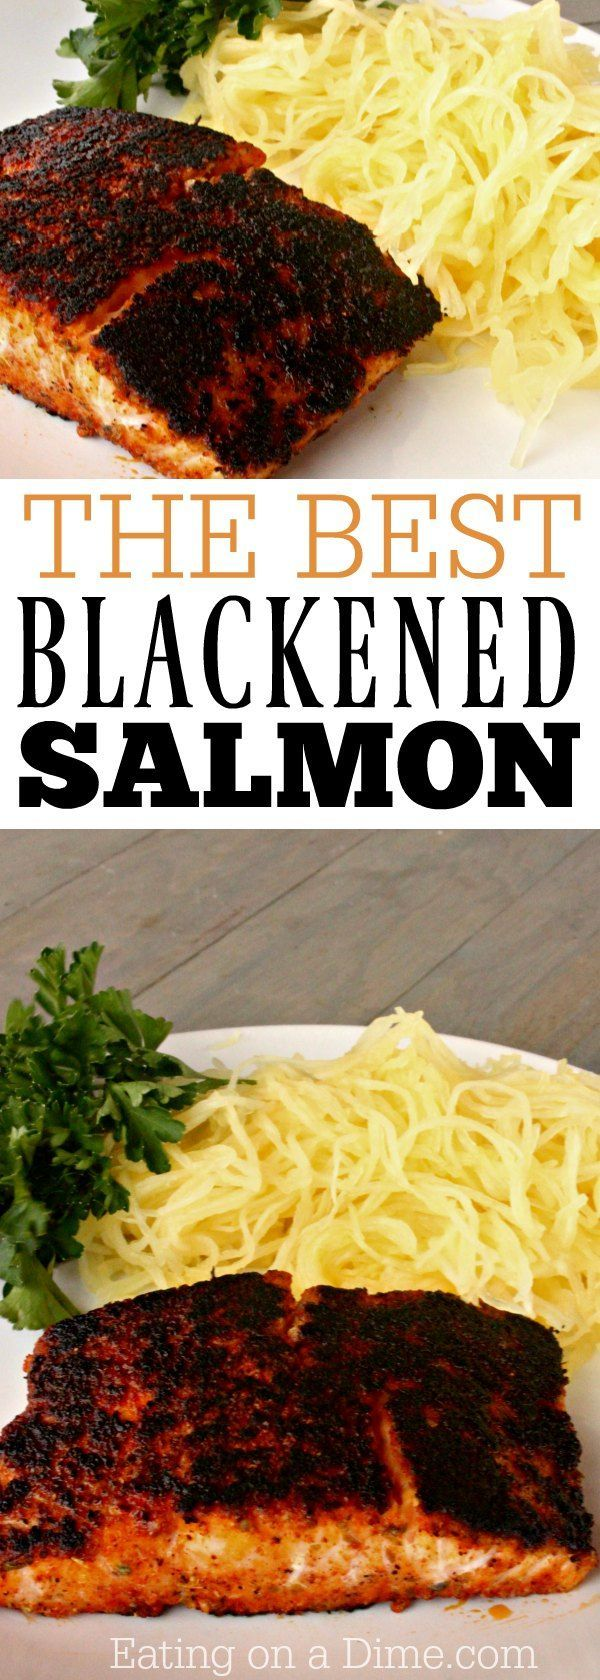 Best Blackened Salmon Recipe - Ready in just 6 minutes!